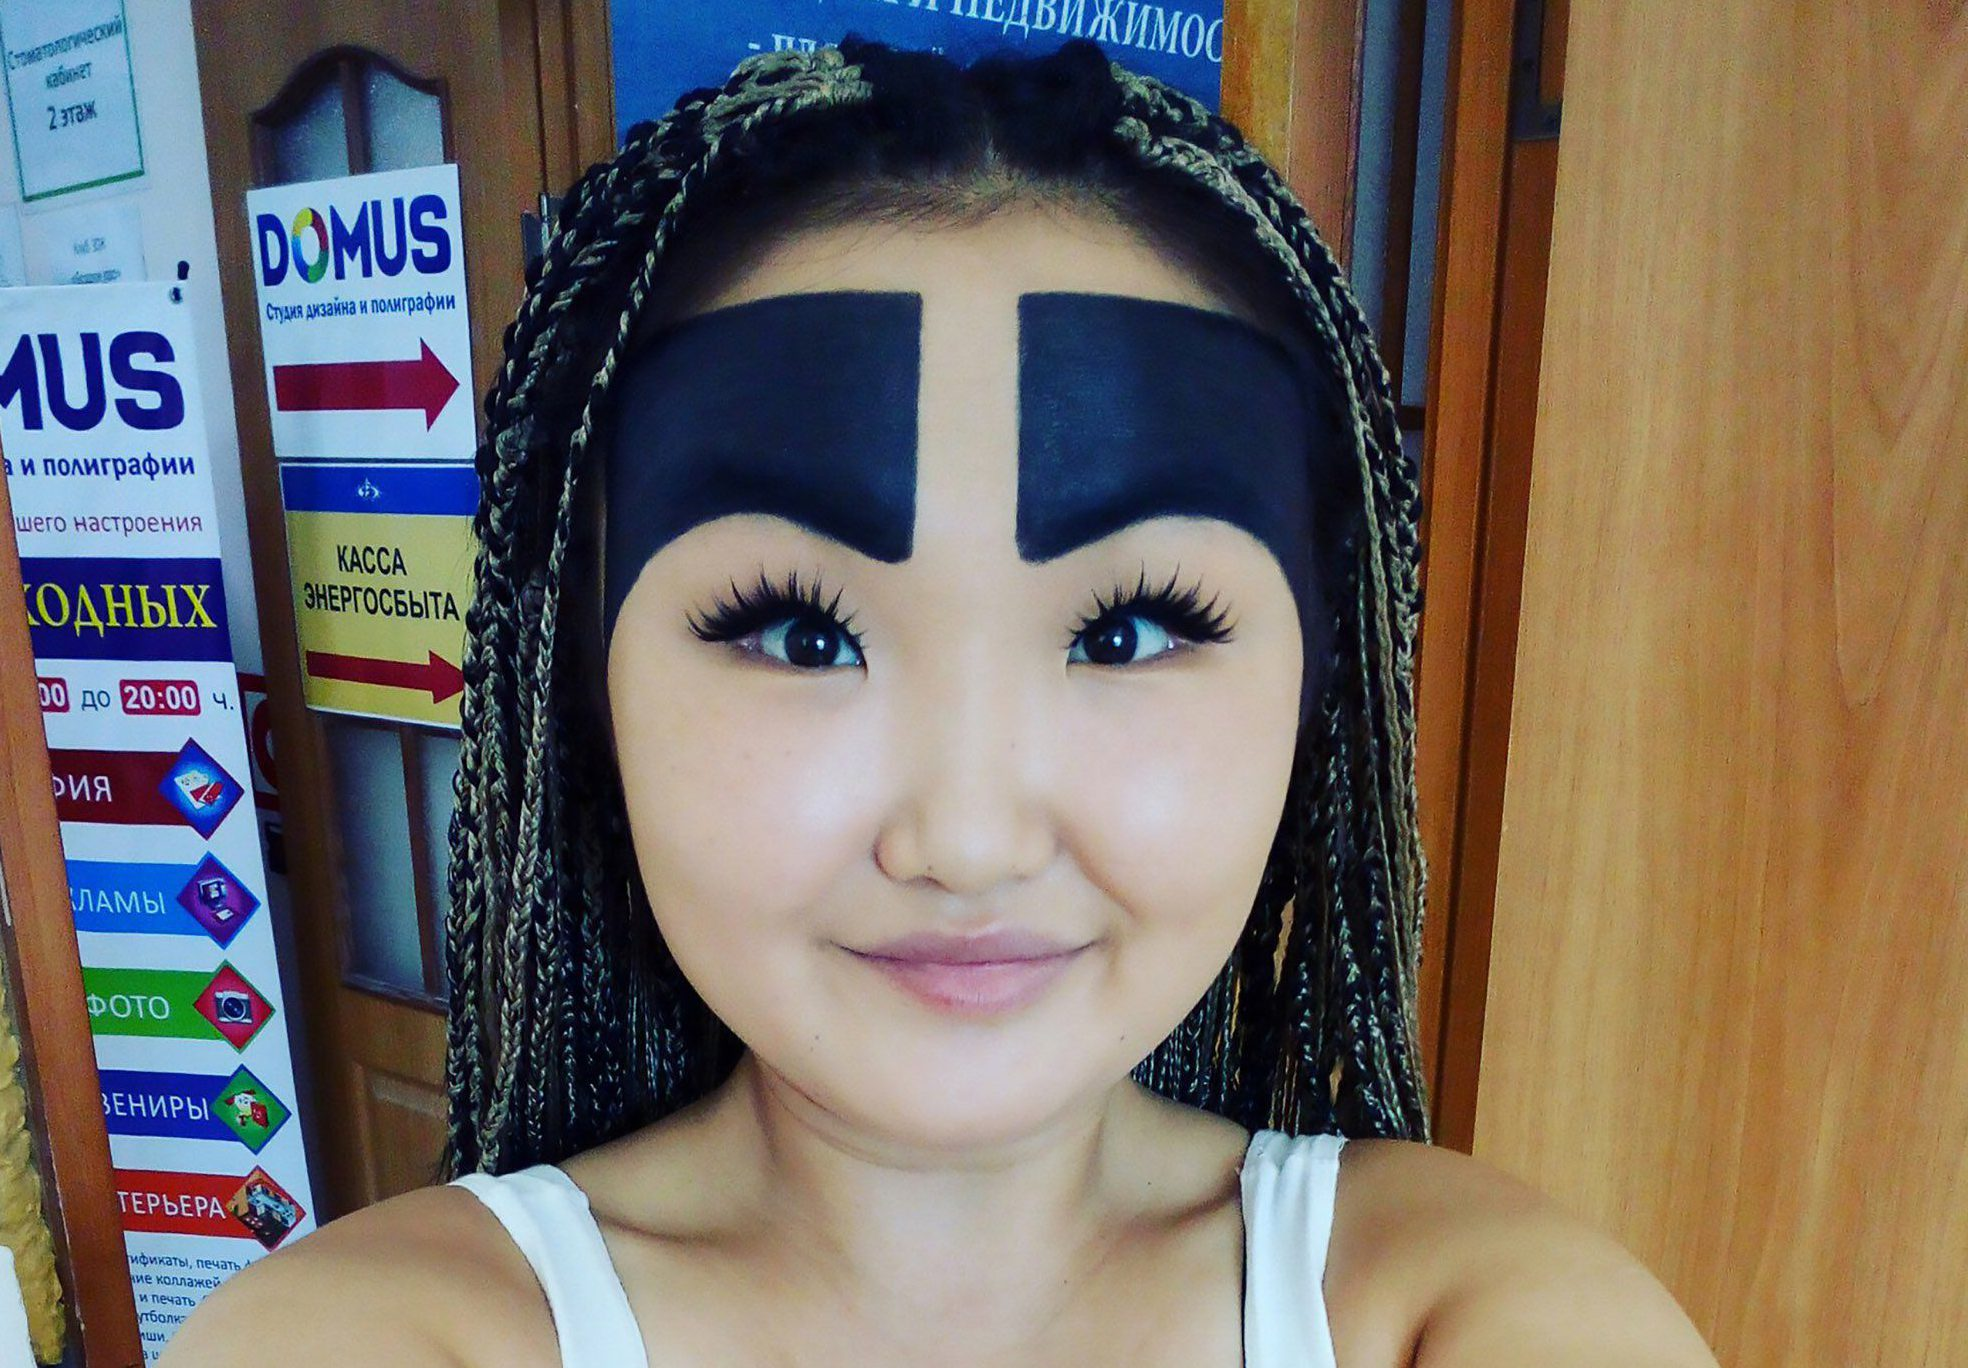 """Pics shows: Anzhelika Protodyakonova; Meet the fashion blogger with humongous painted-on eyebrows that cover most of her forehead. The 21-year-old fashion blogger, Anzhelika Protodyakonova, is from the city of Yakutsk in Russia's south-eastern Sakha Republic. The young woman reached fame accidentally when an onlooker took a photo of her on the bus and shared it online, even though back then Anzhelika says they were no comparison to the whoppers she boasts now. The photo quickly spread over social media and gained her online recognition, with thousands of likes and now over 90,0000 followers on Instagram. According to local media, the young woman wanted to imitate the large eye-brows from the Angry Birds. At first she says she was embarrassed by the photo, but when she saw how much attention she got, she decided to embrace the situation and started painting them bigger and bigger. The blogger says she now lives from advertising and enjoys discounts from many businesses because of her big brows. Social media users have left varying reviews with one user @SadiaSlayy writing: """"Alright babes I???ve been seeing this video going around of super bold brows! Is this going to be the new brow trend of 2017??? Yes or no? Tag a friend who loves bold brows."""" While Netizen ???Gyyyy??? said: """"The moment there is WIFI in any mental asylum, the amount of top bloggers will increase."""""""